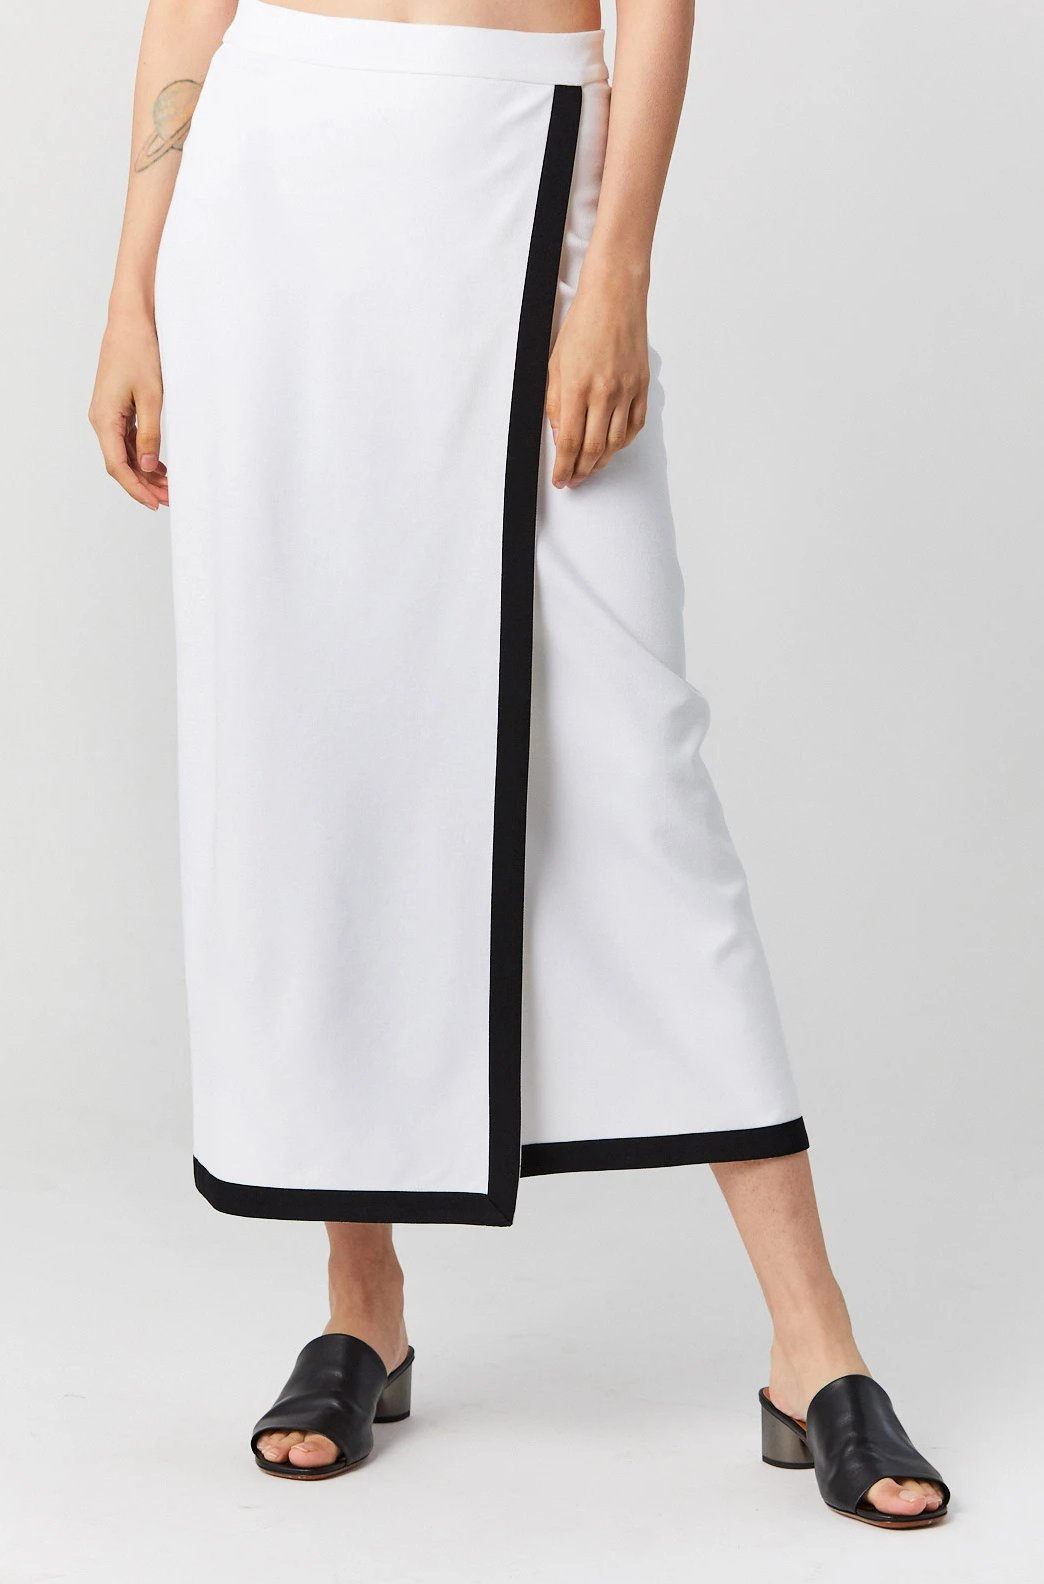 ROSETTA GETTY - Bordered Wrap Front Skirt, White/Black